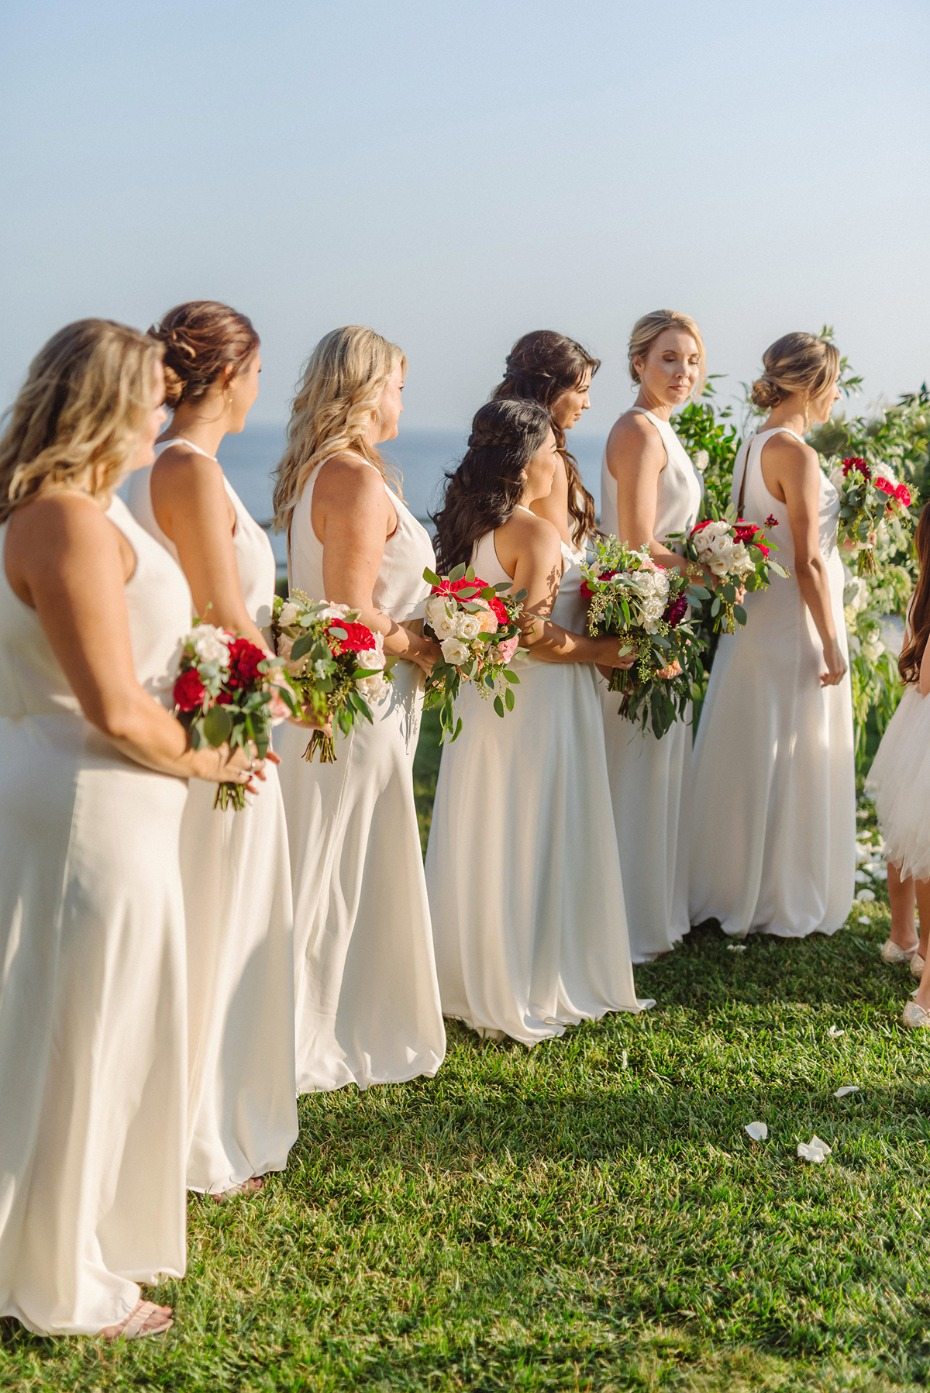 bridesmaids in matching white